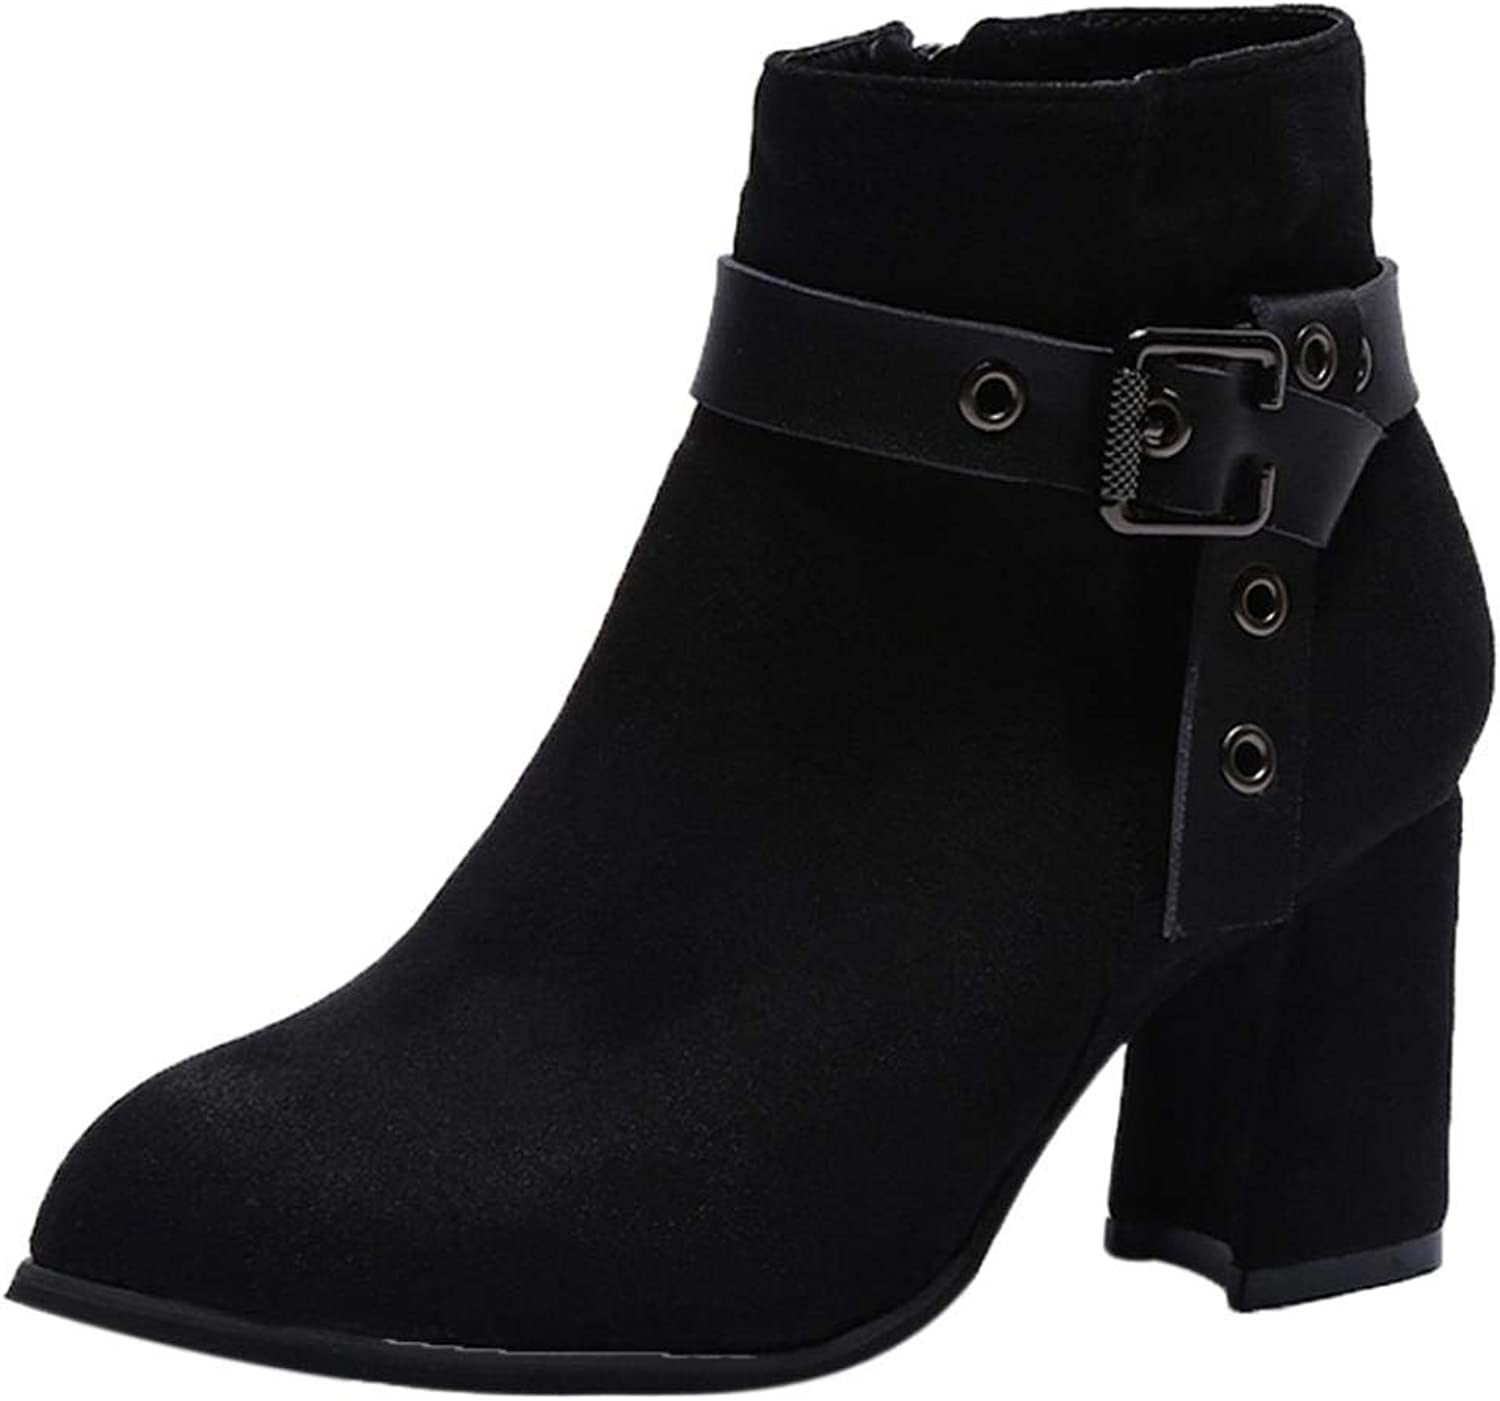 Lady Boots Fashion Women Boots Round Head High Heel Martin Boots Classic Ankle Leisure Elegant Soft Wild Tight Super Quality Black for Womens